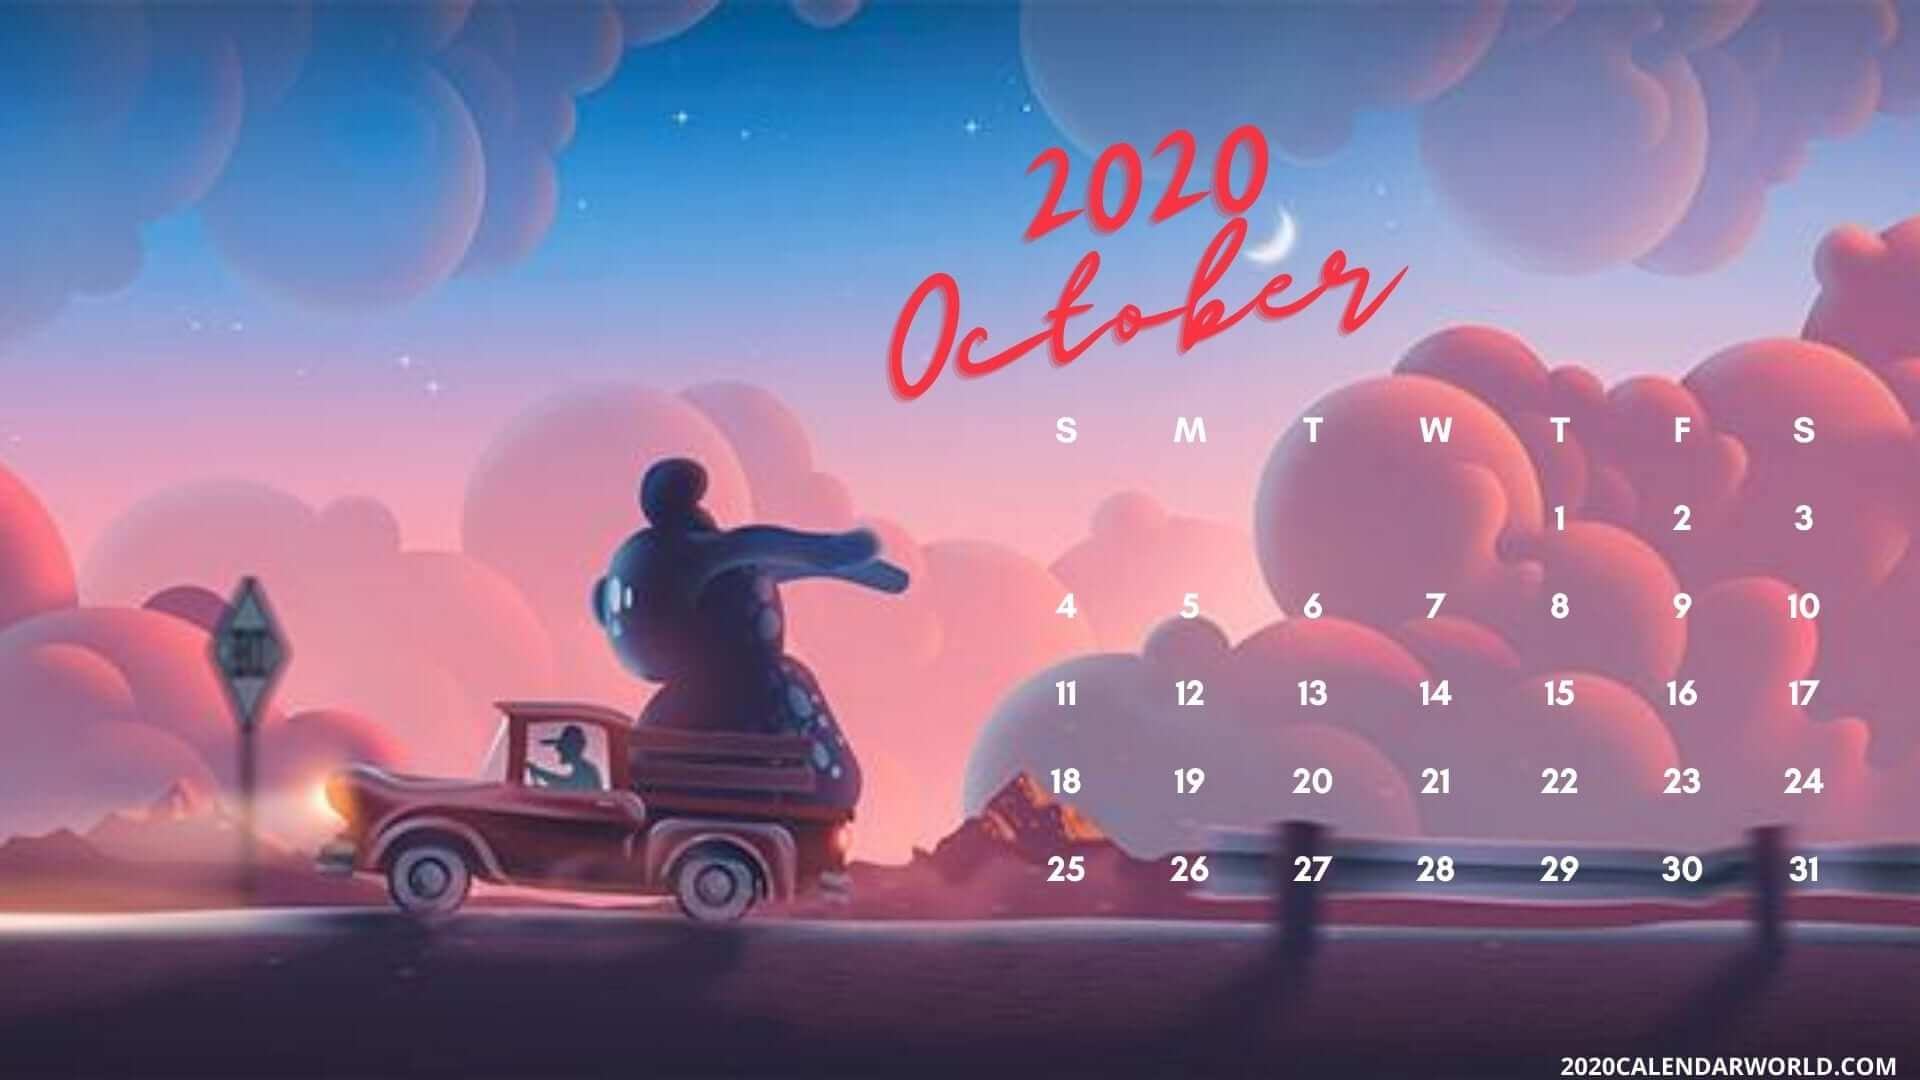 October 2020 Calendar Desktop Wallpaper